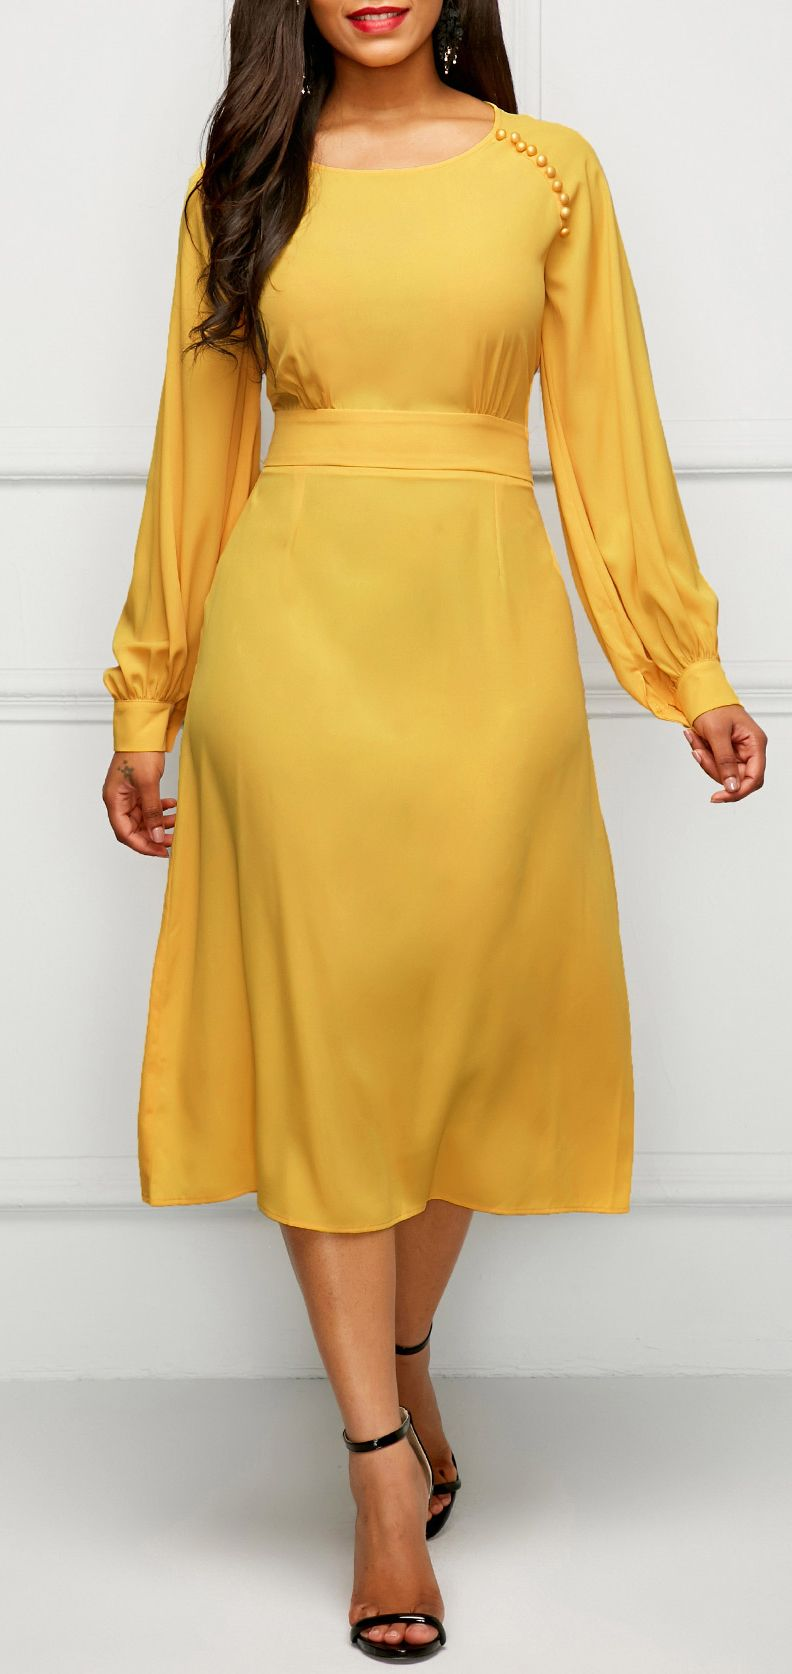 542c378f17 Band Waist Long Sleeve Yellow Dress. | Spring Summer Dress in 2019 ...